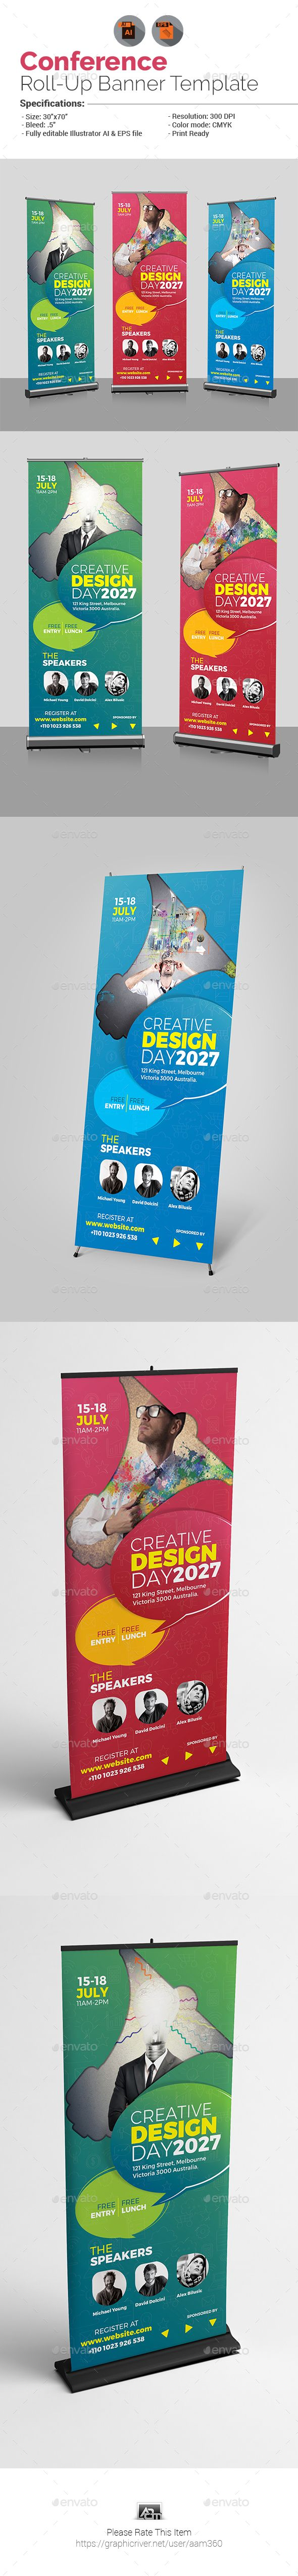 156 best Conference / Event / Meeting Print Templates images on ...